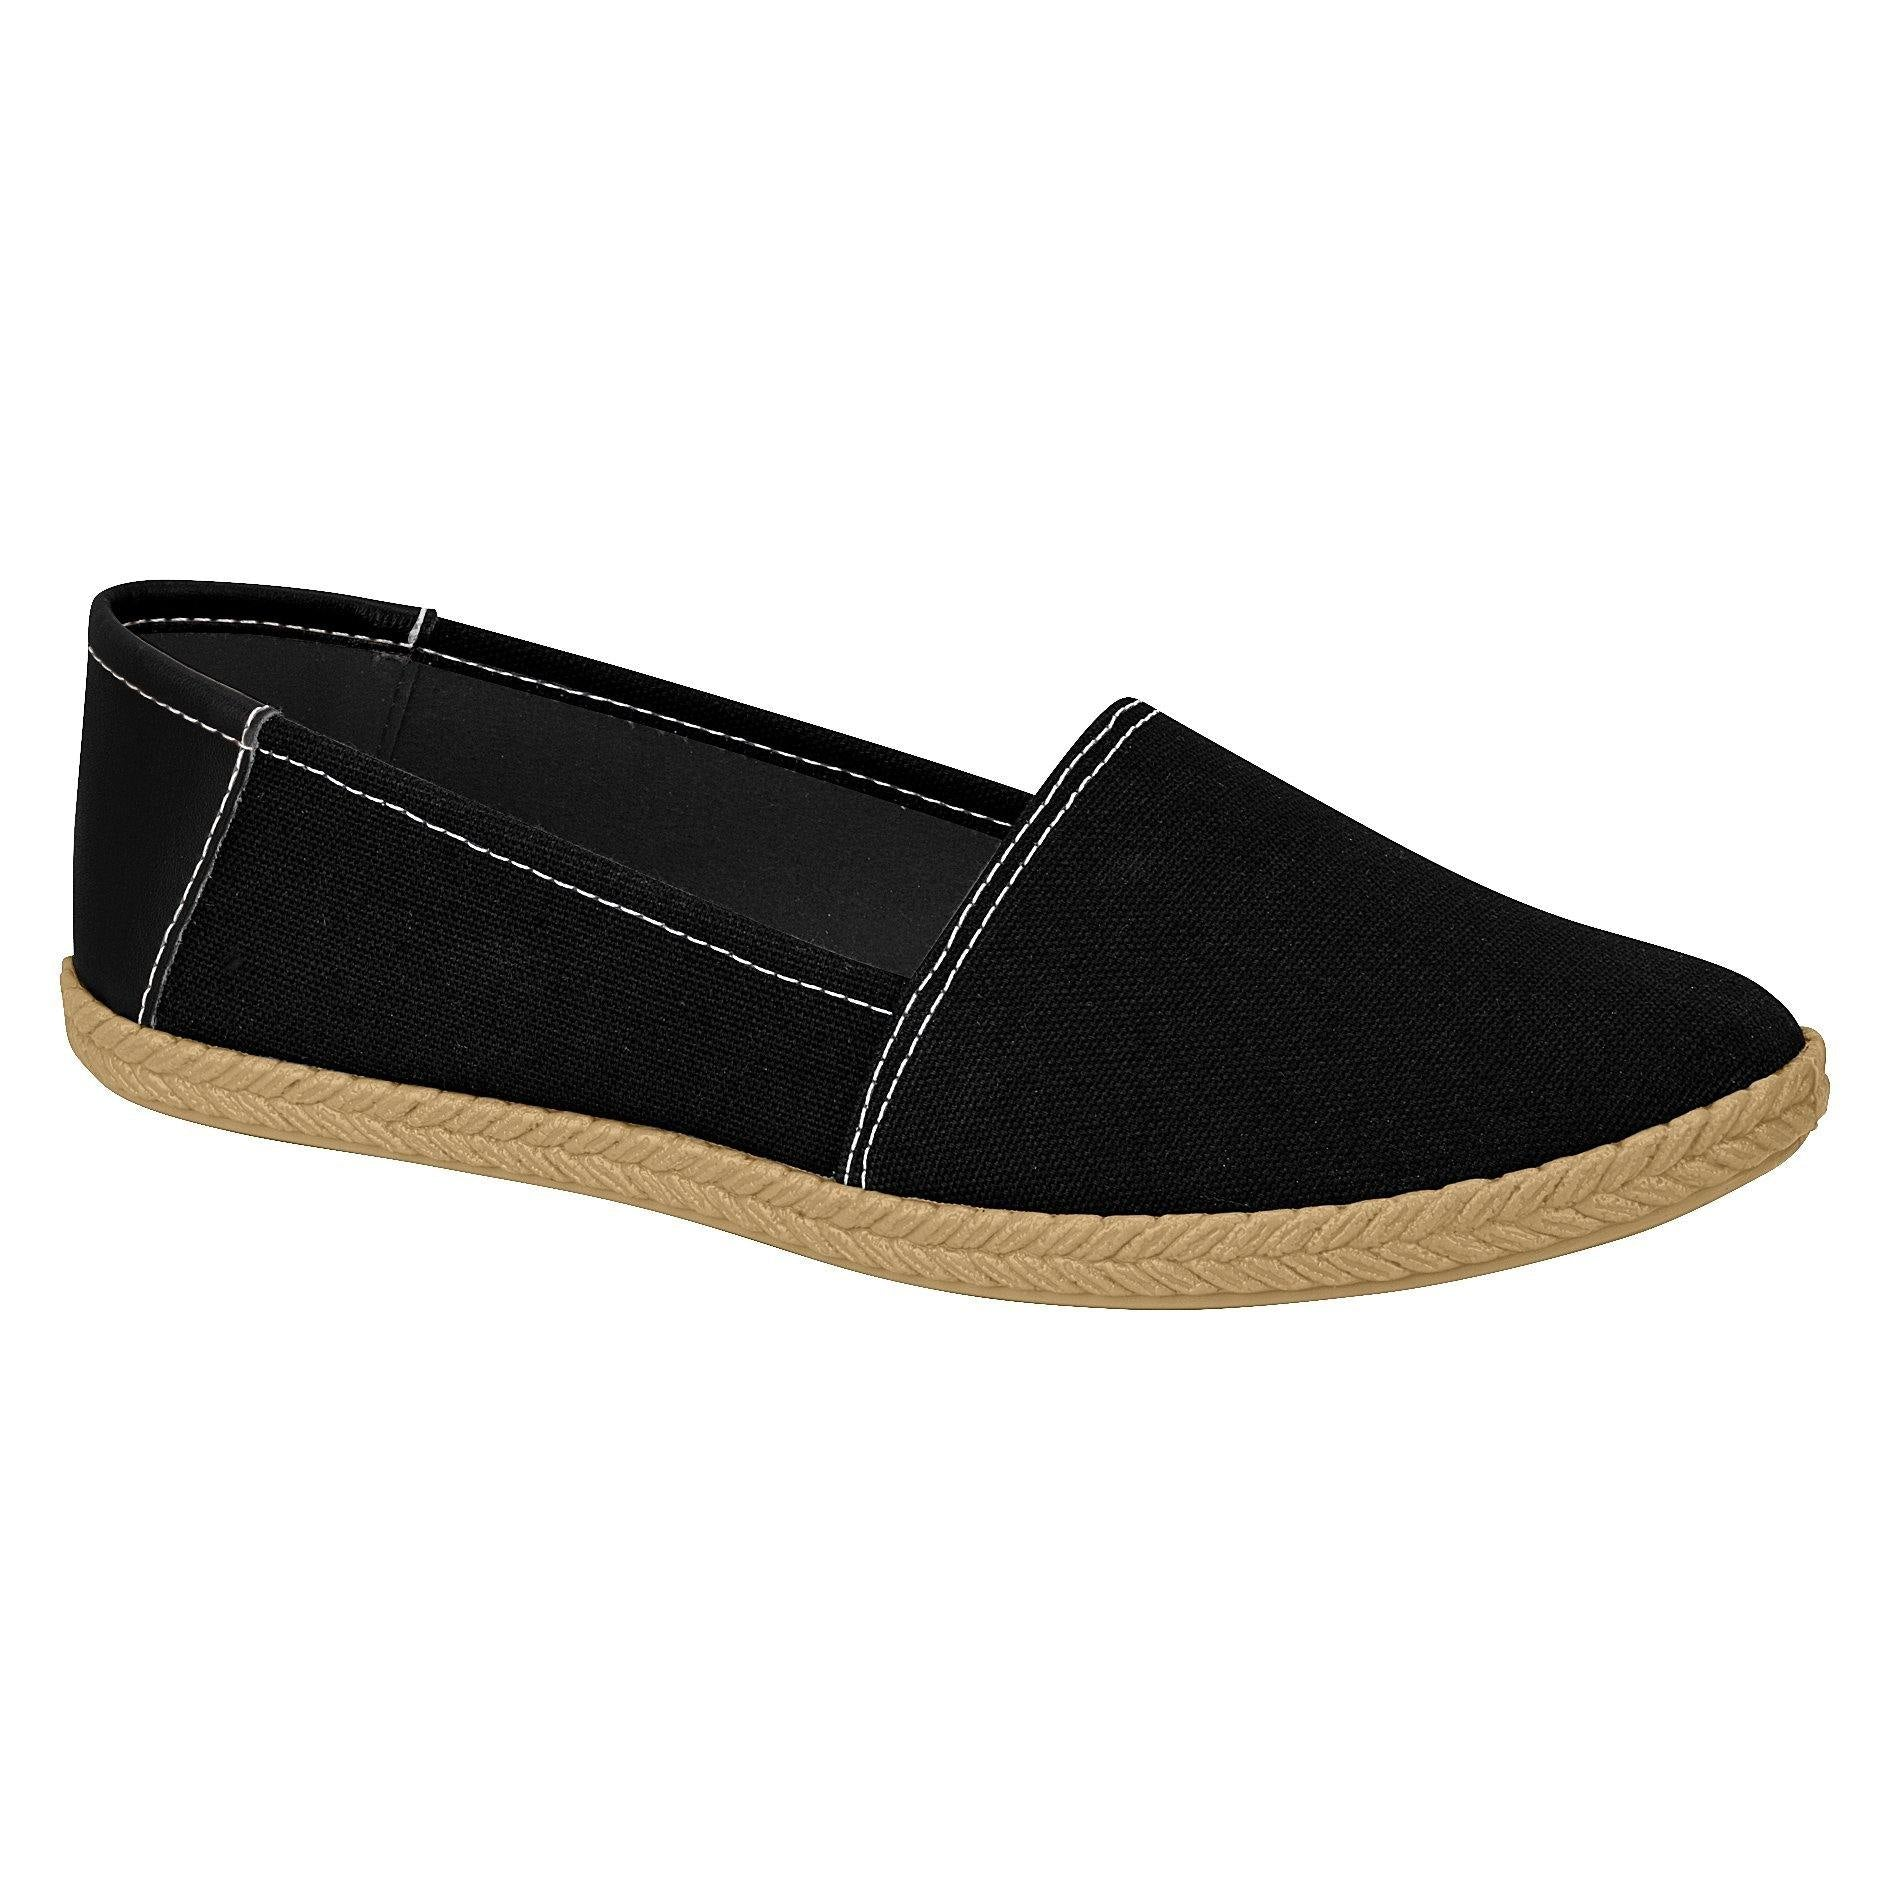 Moleca 5287-246 Canvas Flat in Black